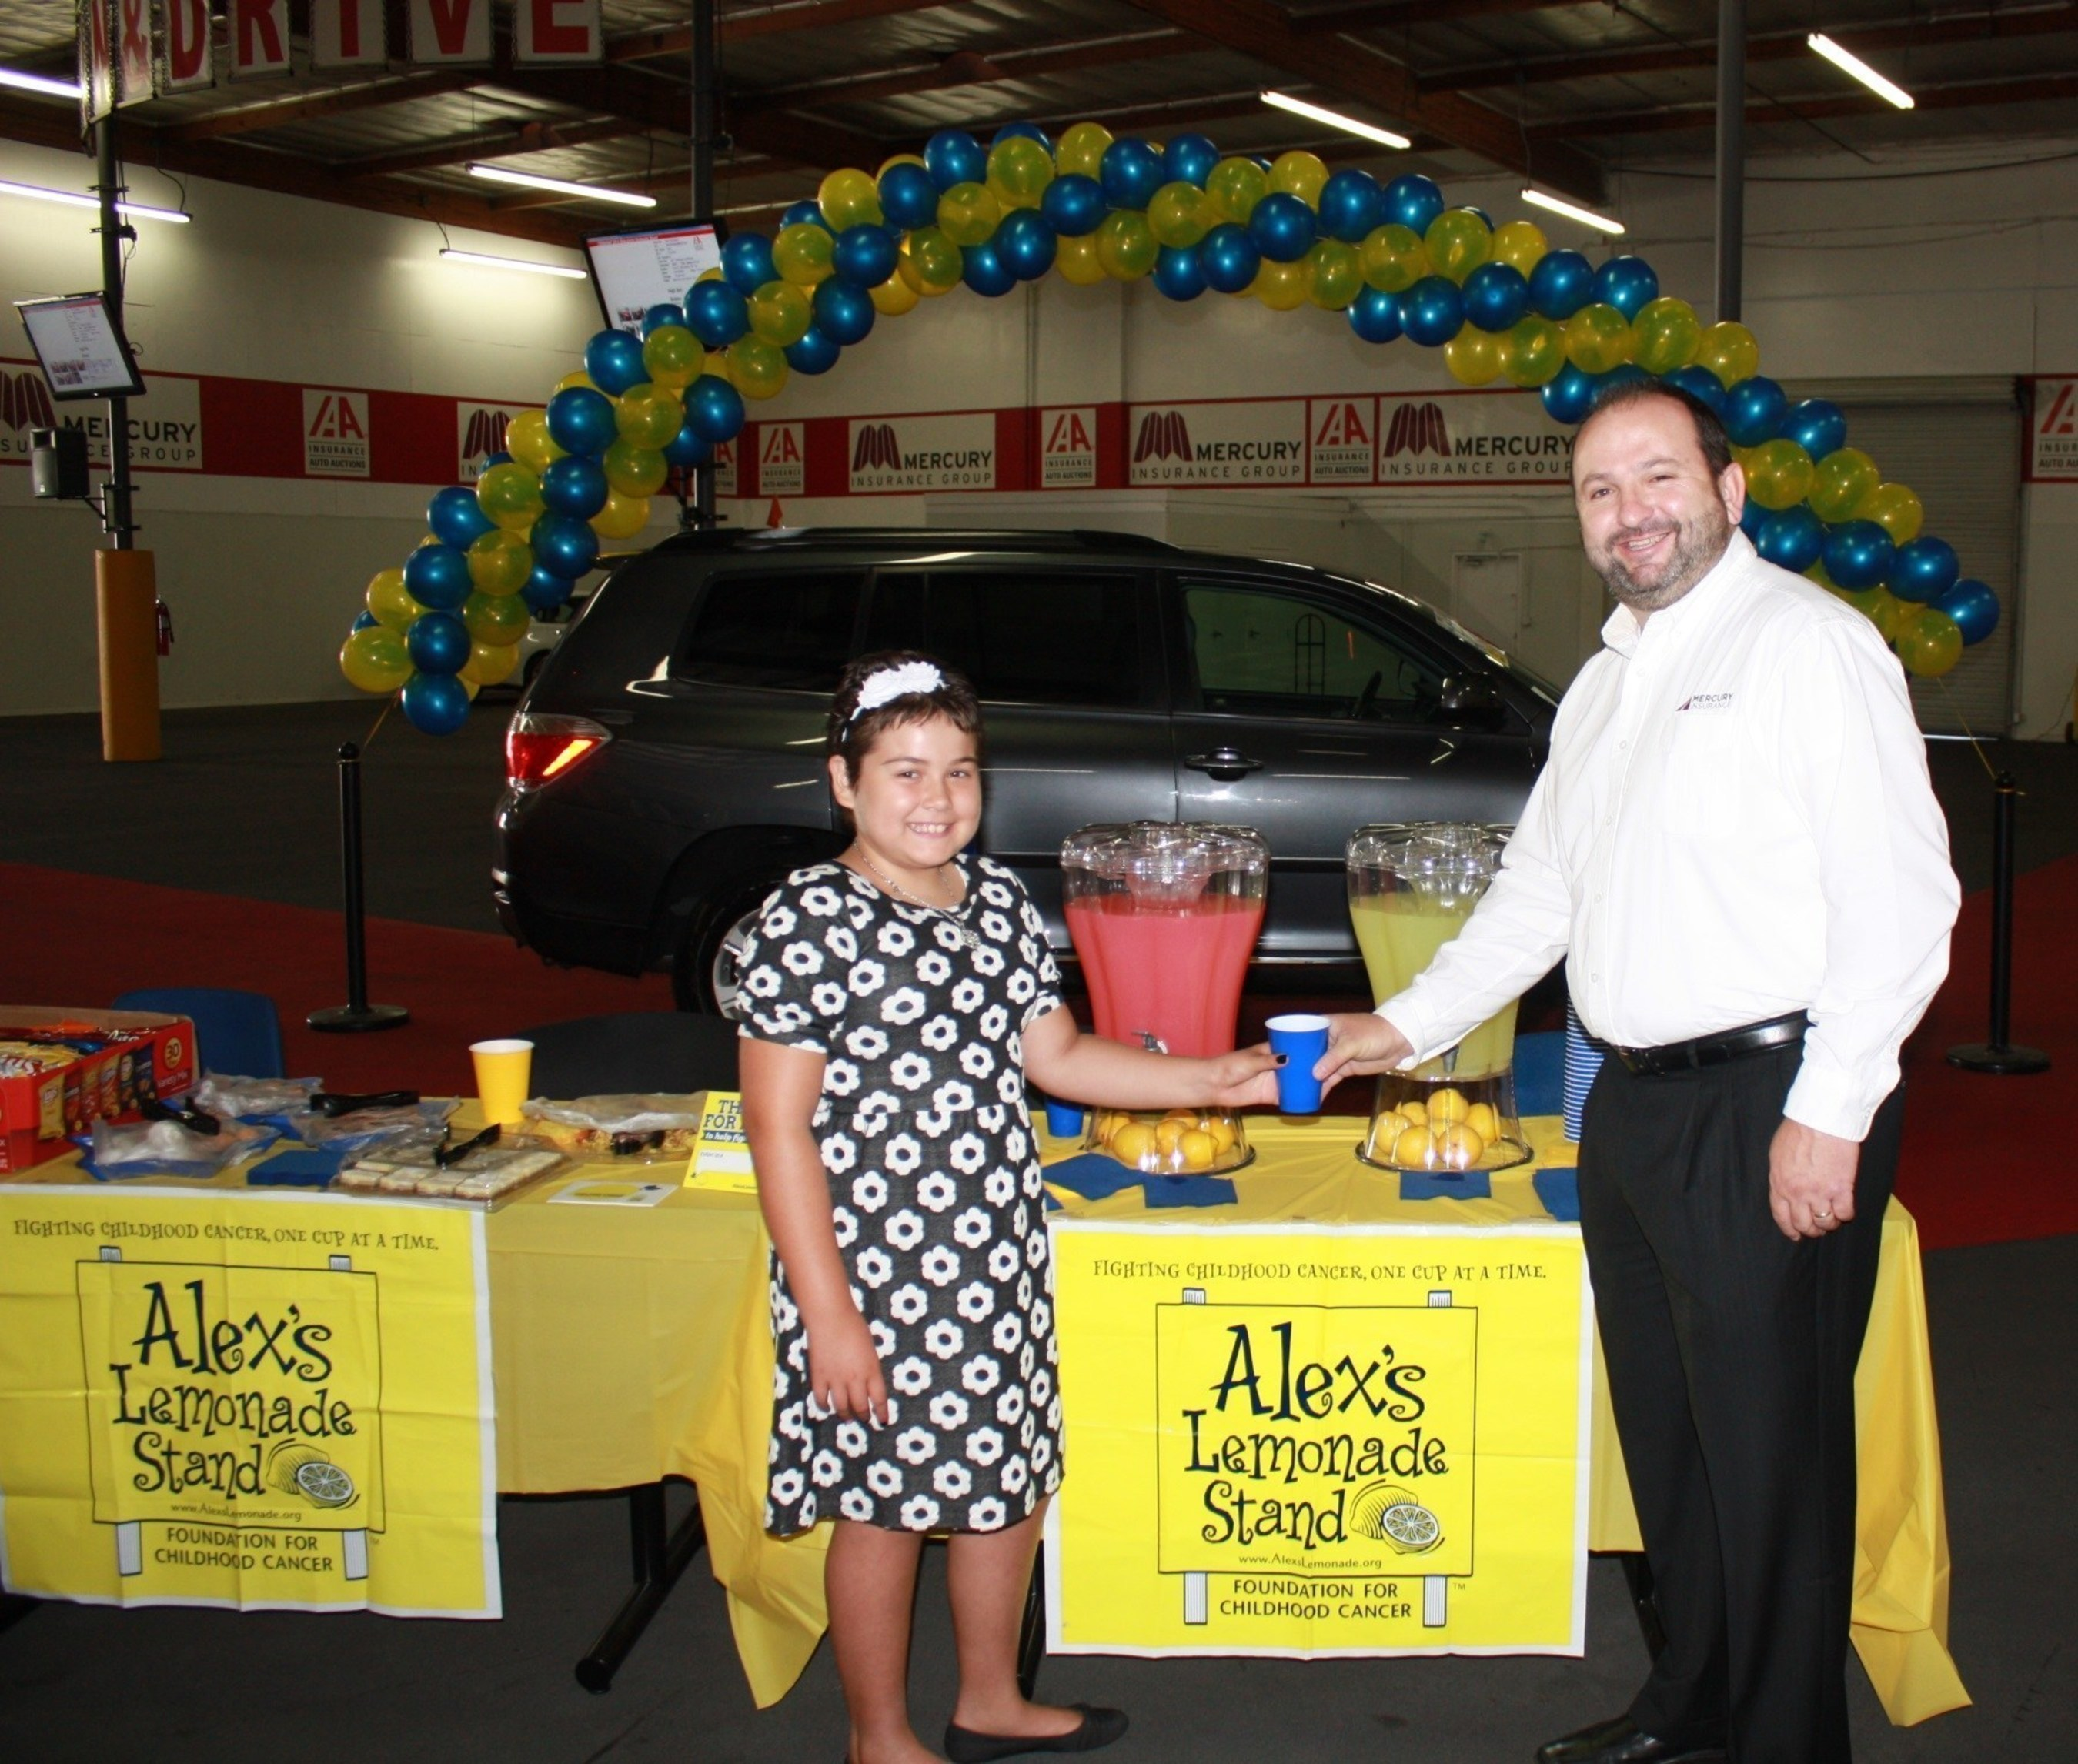 Alex's Lemonade Stand Foundation Hero Karah Casas serves lemonade to Mercury's Jim Bohn at vehicle auction that helped raise $14,700 for childhood cancer research.